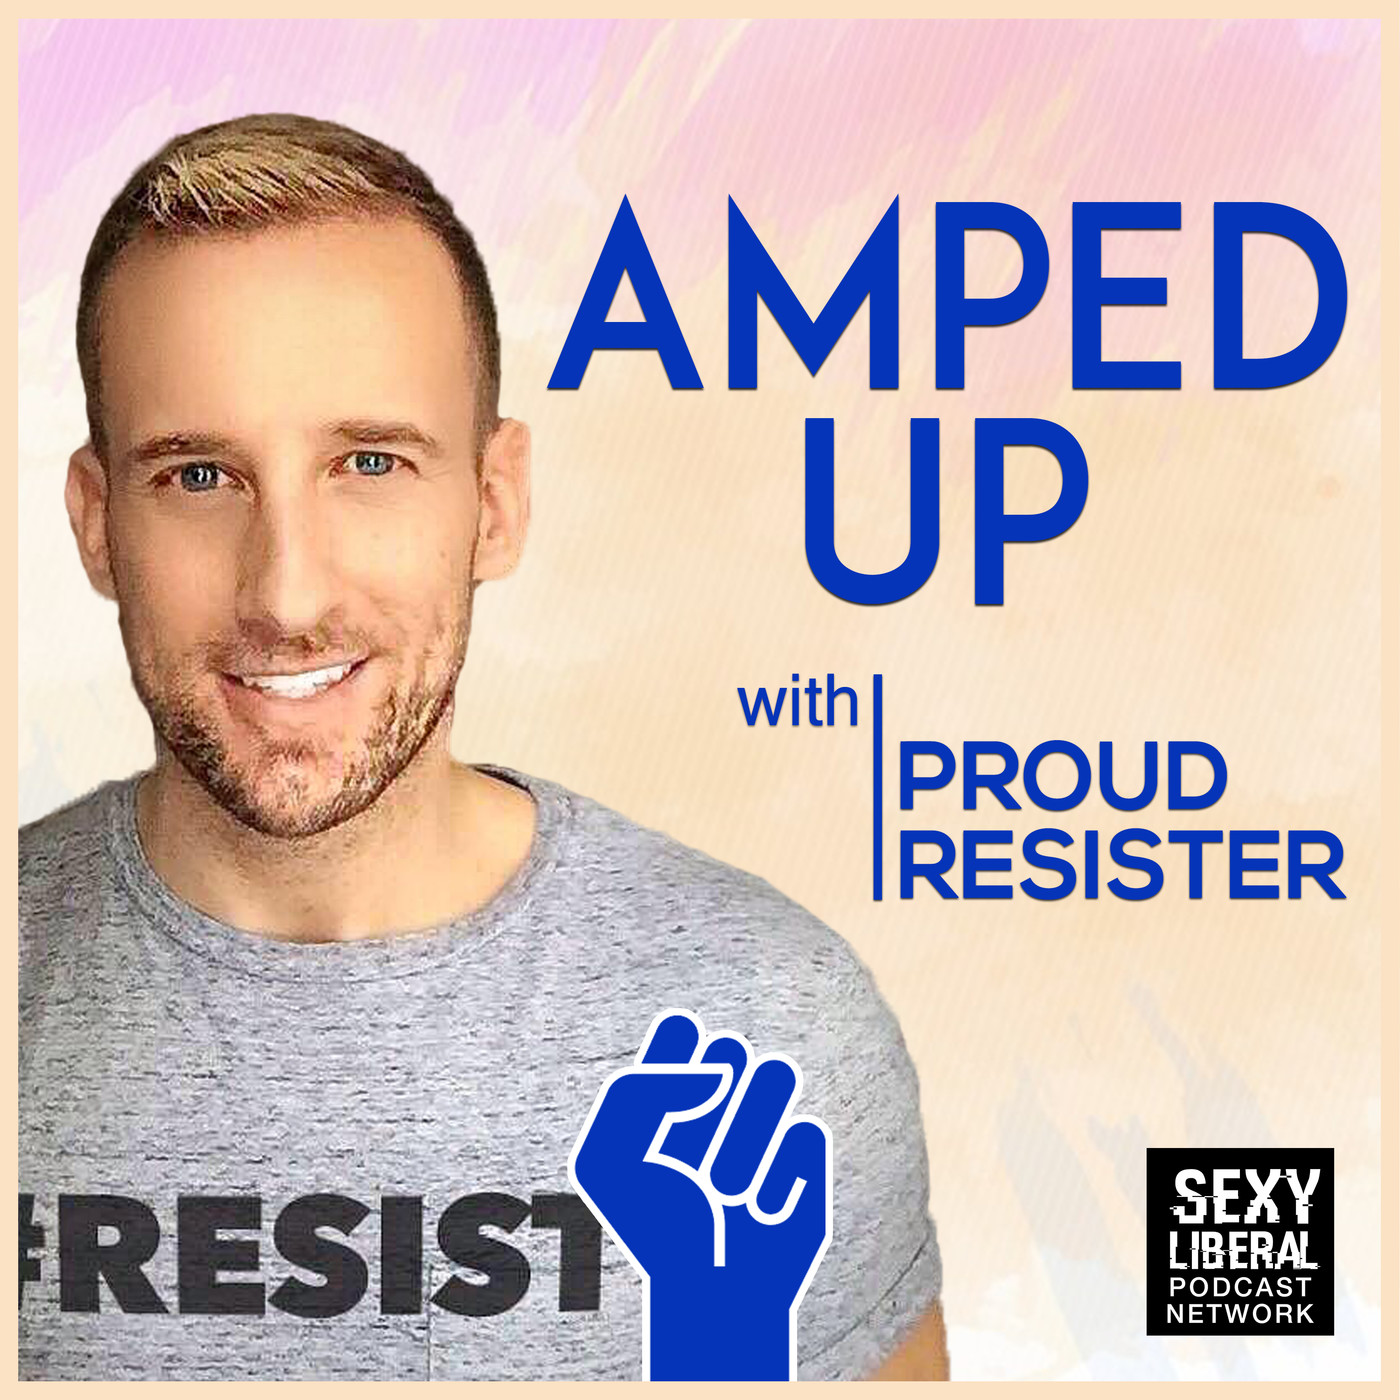 Adam Green Gets Amped Up with Proud Resister - 11-22-19